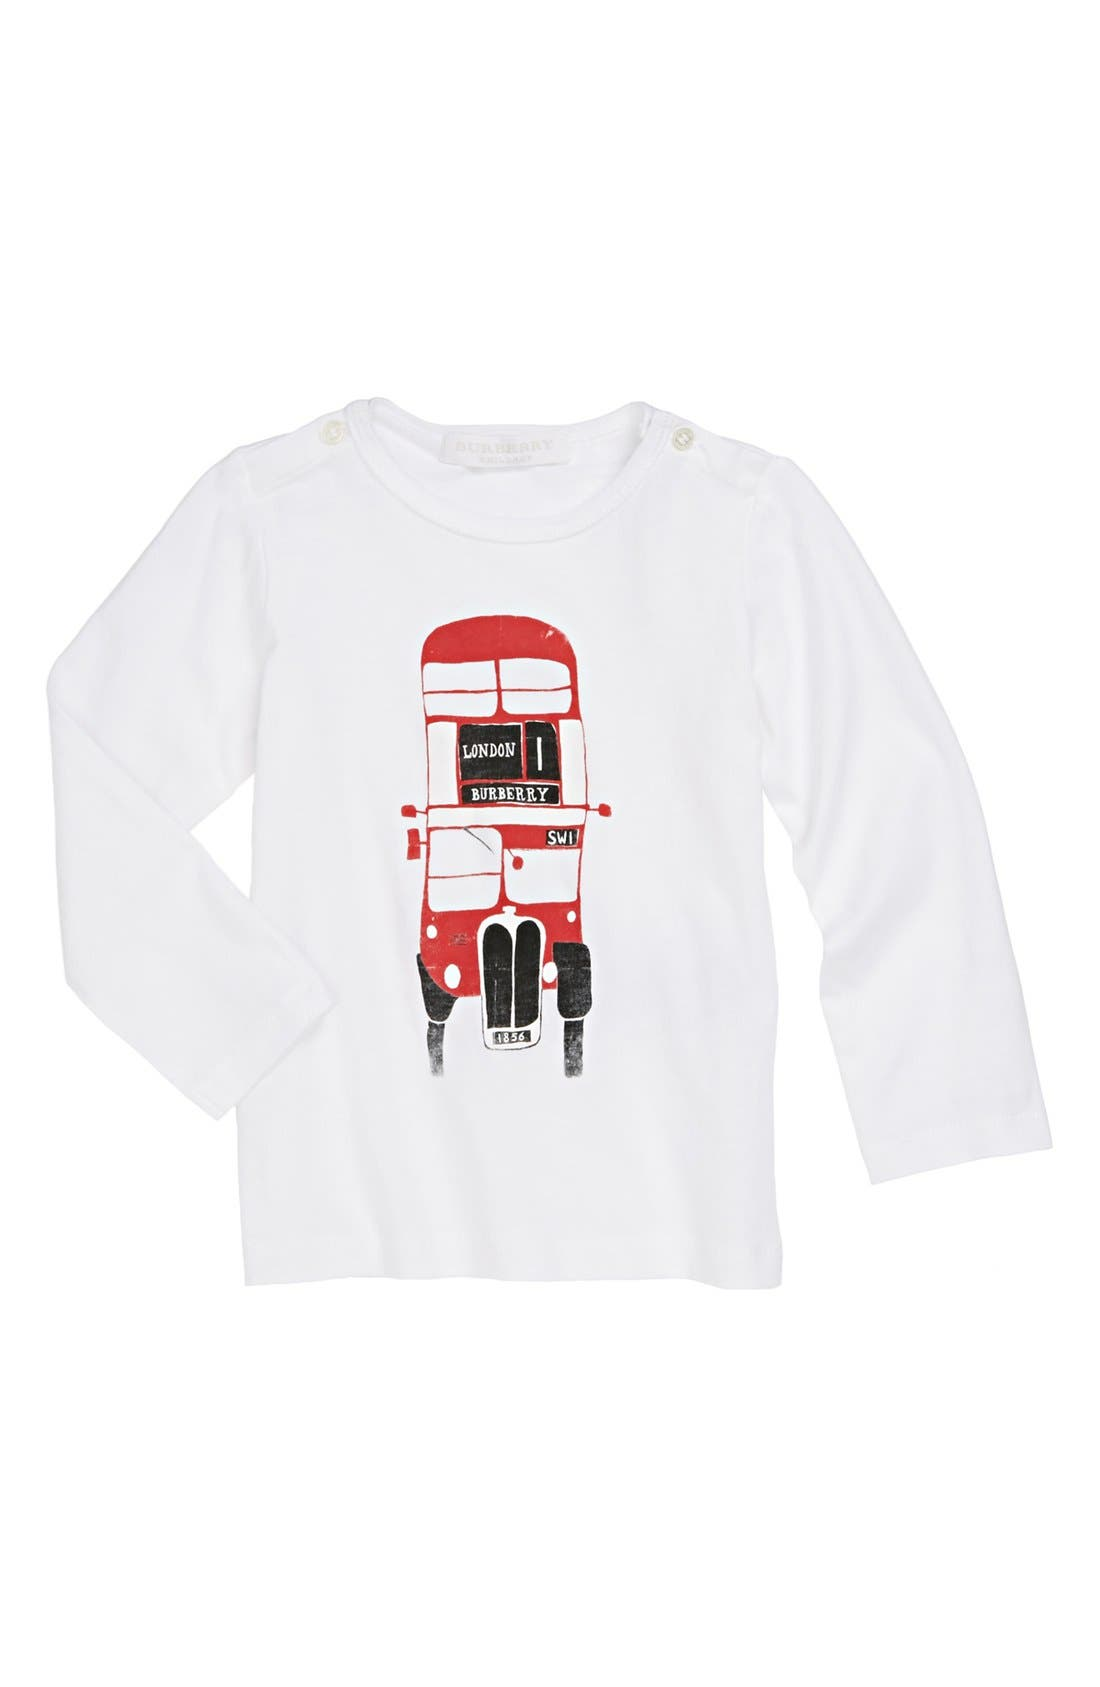 Alternate Image 1 Selected - Burberry Graphic T-Shirt (Toddler Boys)